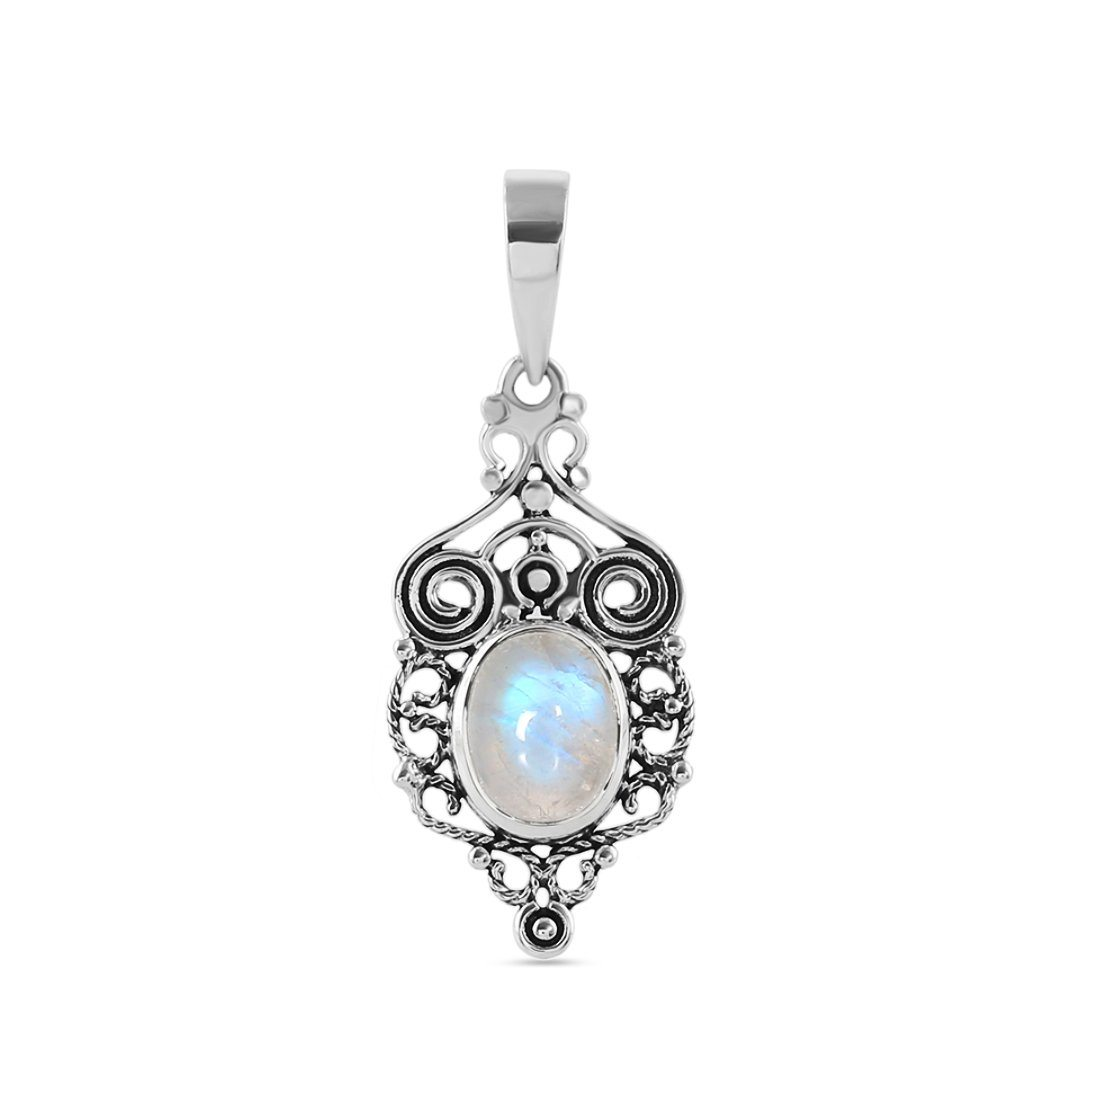 Moonstone Pendant-Royal Tempest Sale Item 925 SILVER & MOONSTONE